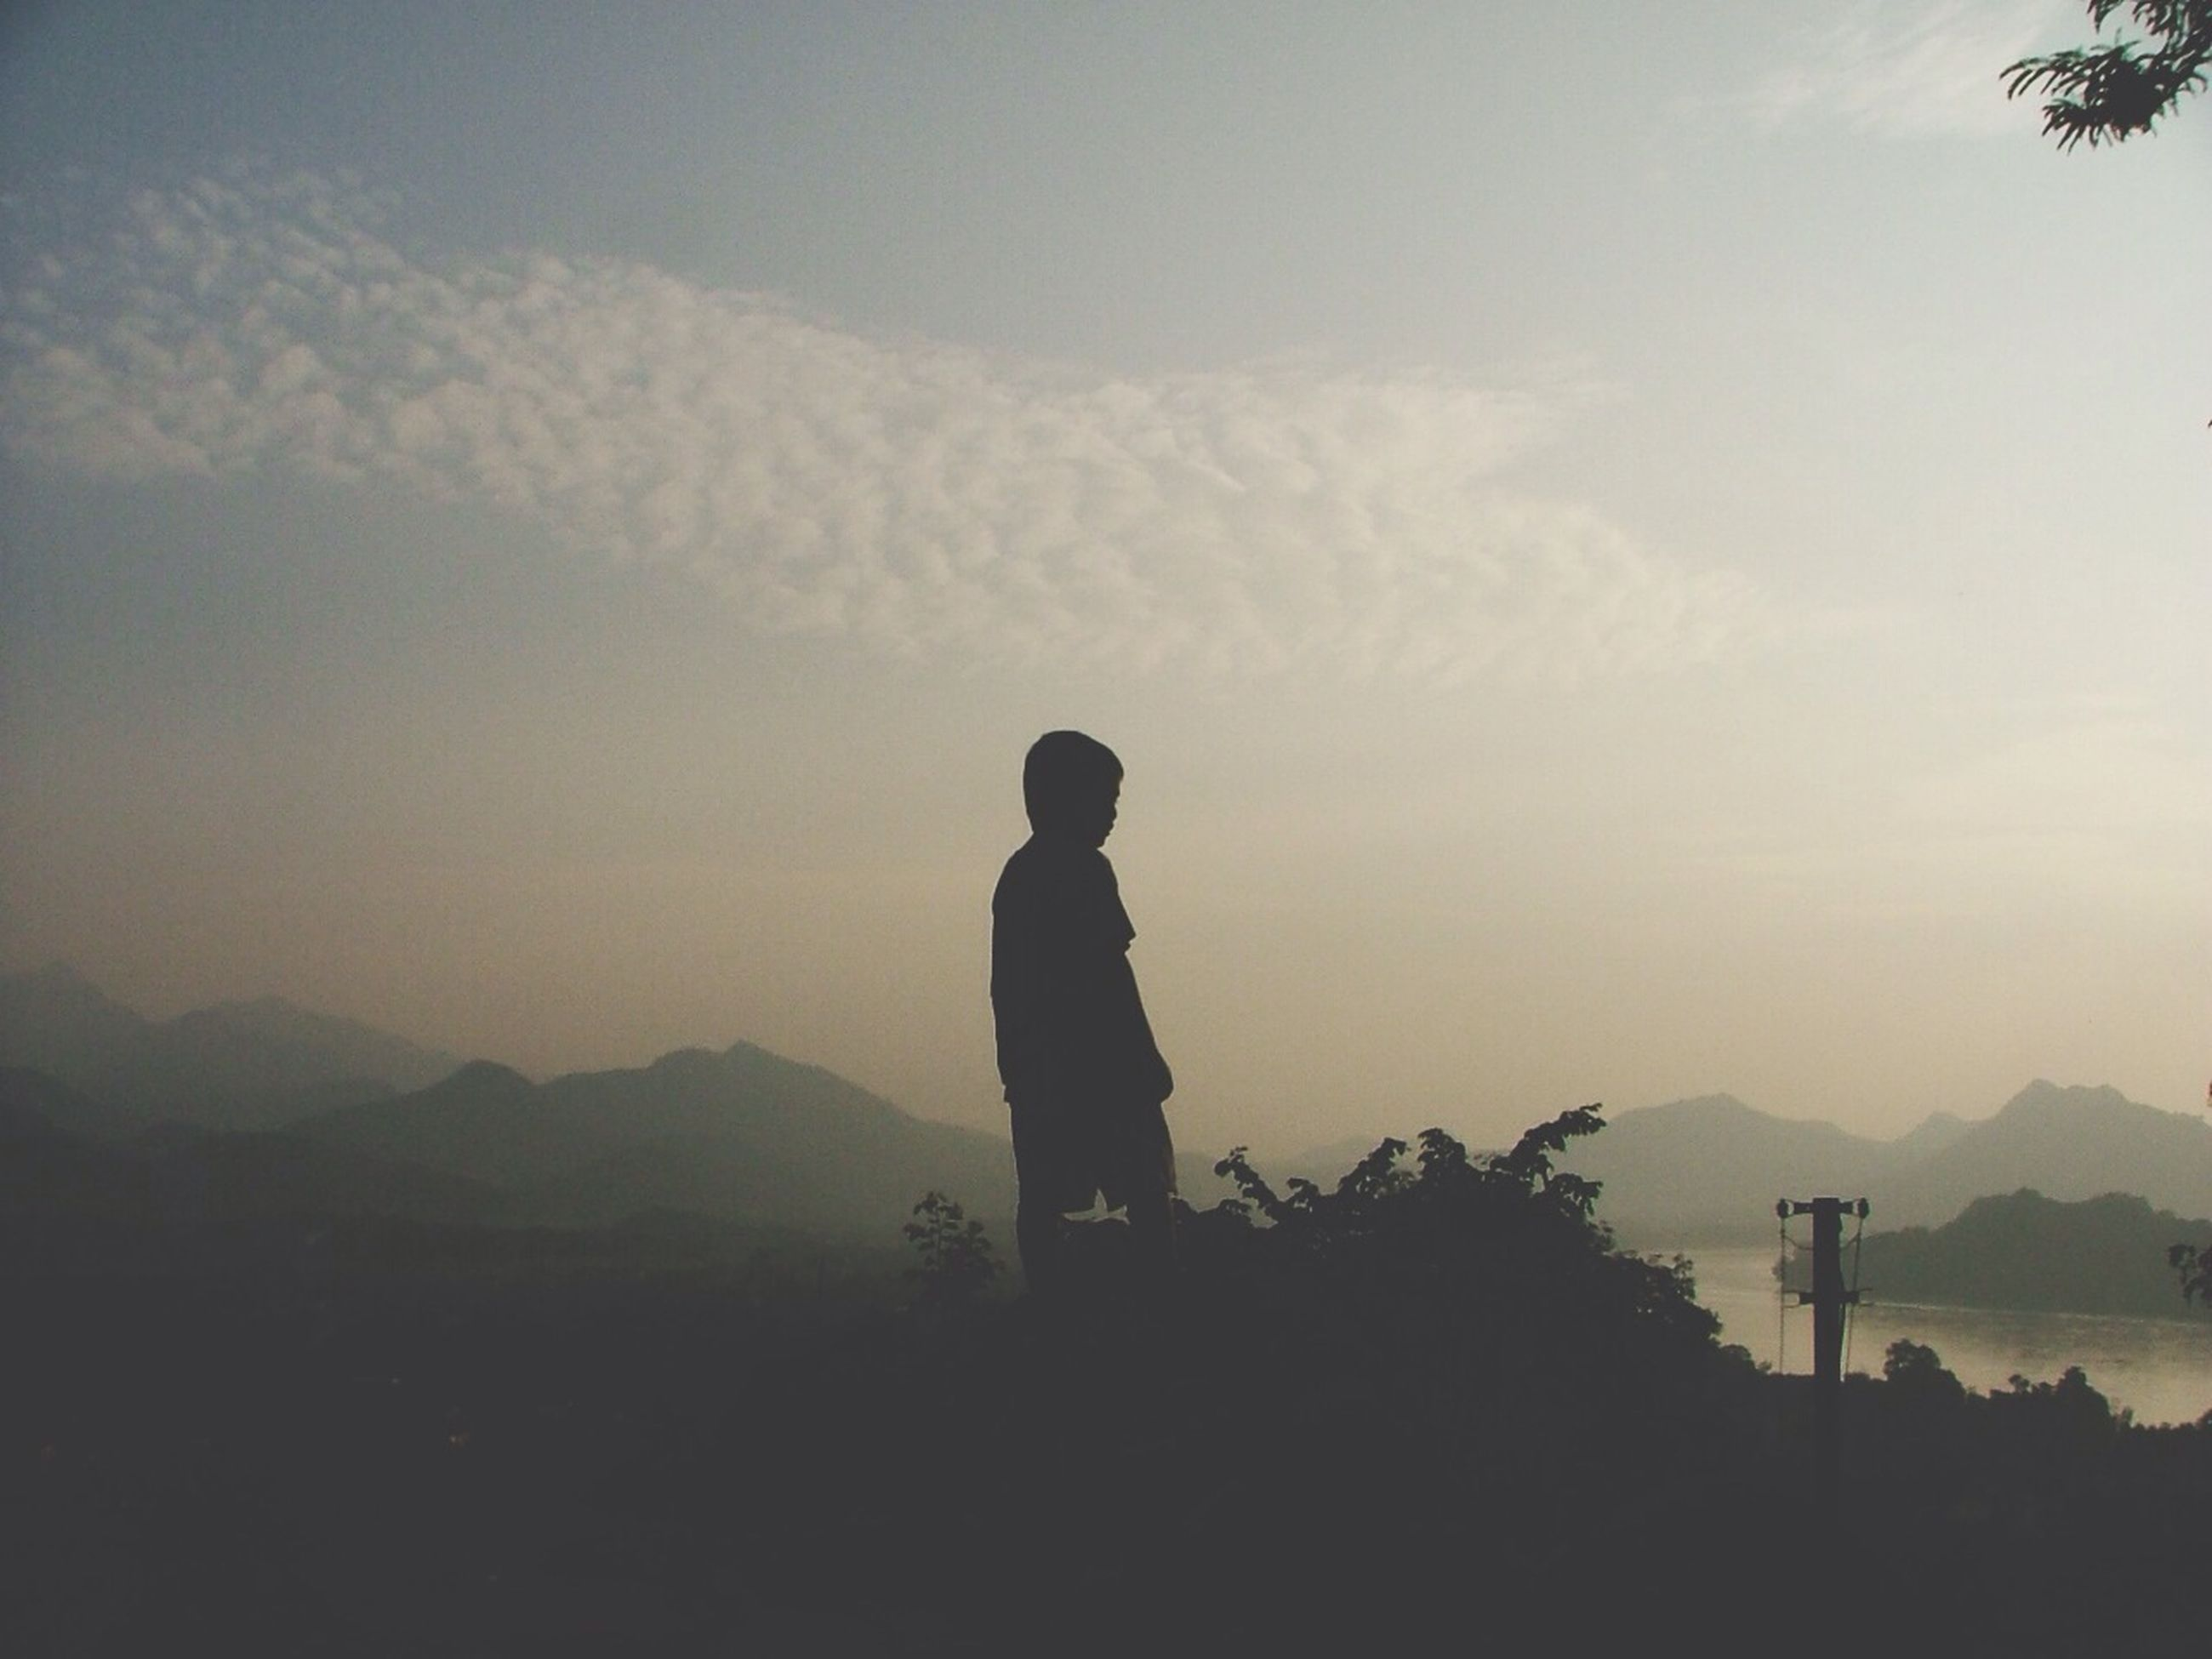 silhouette, lifestyles, leisure activity, standing, sky, rear view, tranquility, tranquil scene, men, mountain, scenics, beauty in nature, full length, nature, landscape, getting away from it all, person, cloud - sky